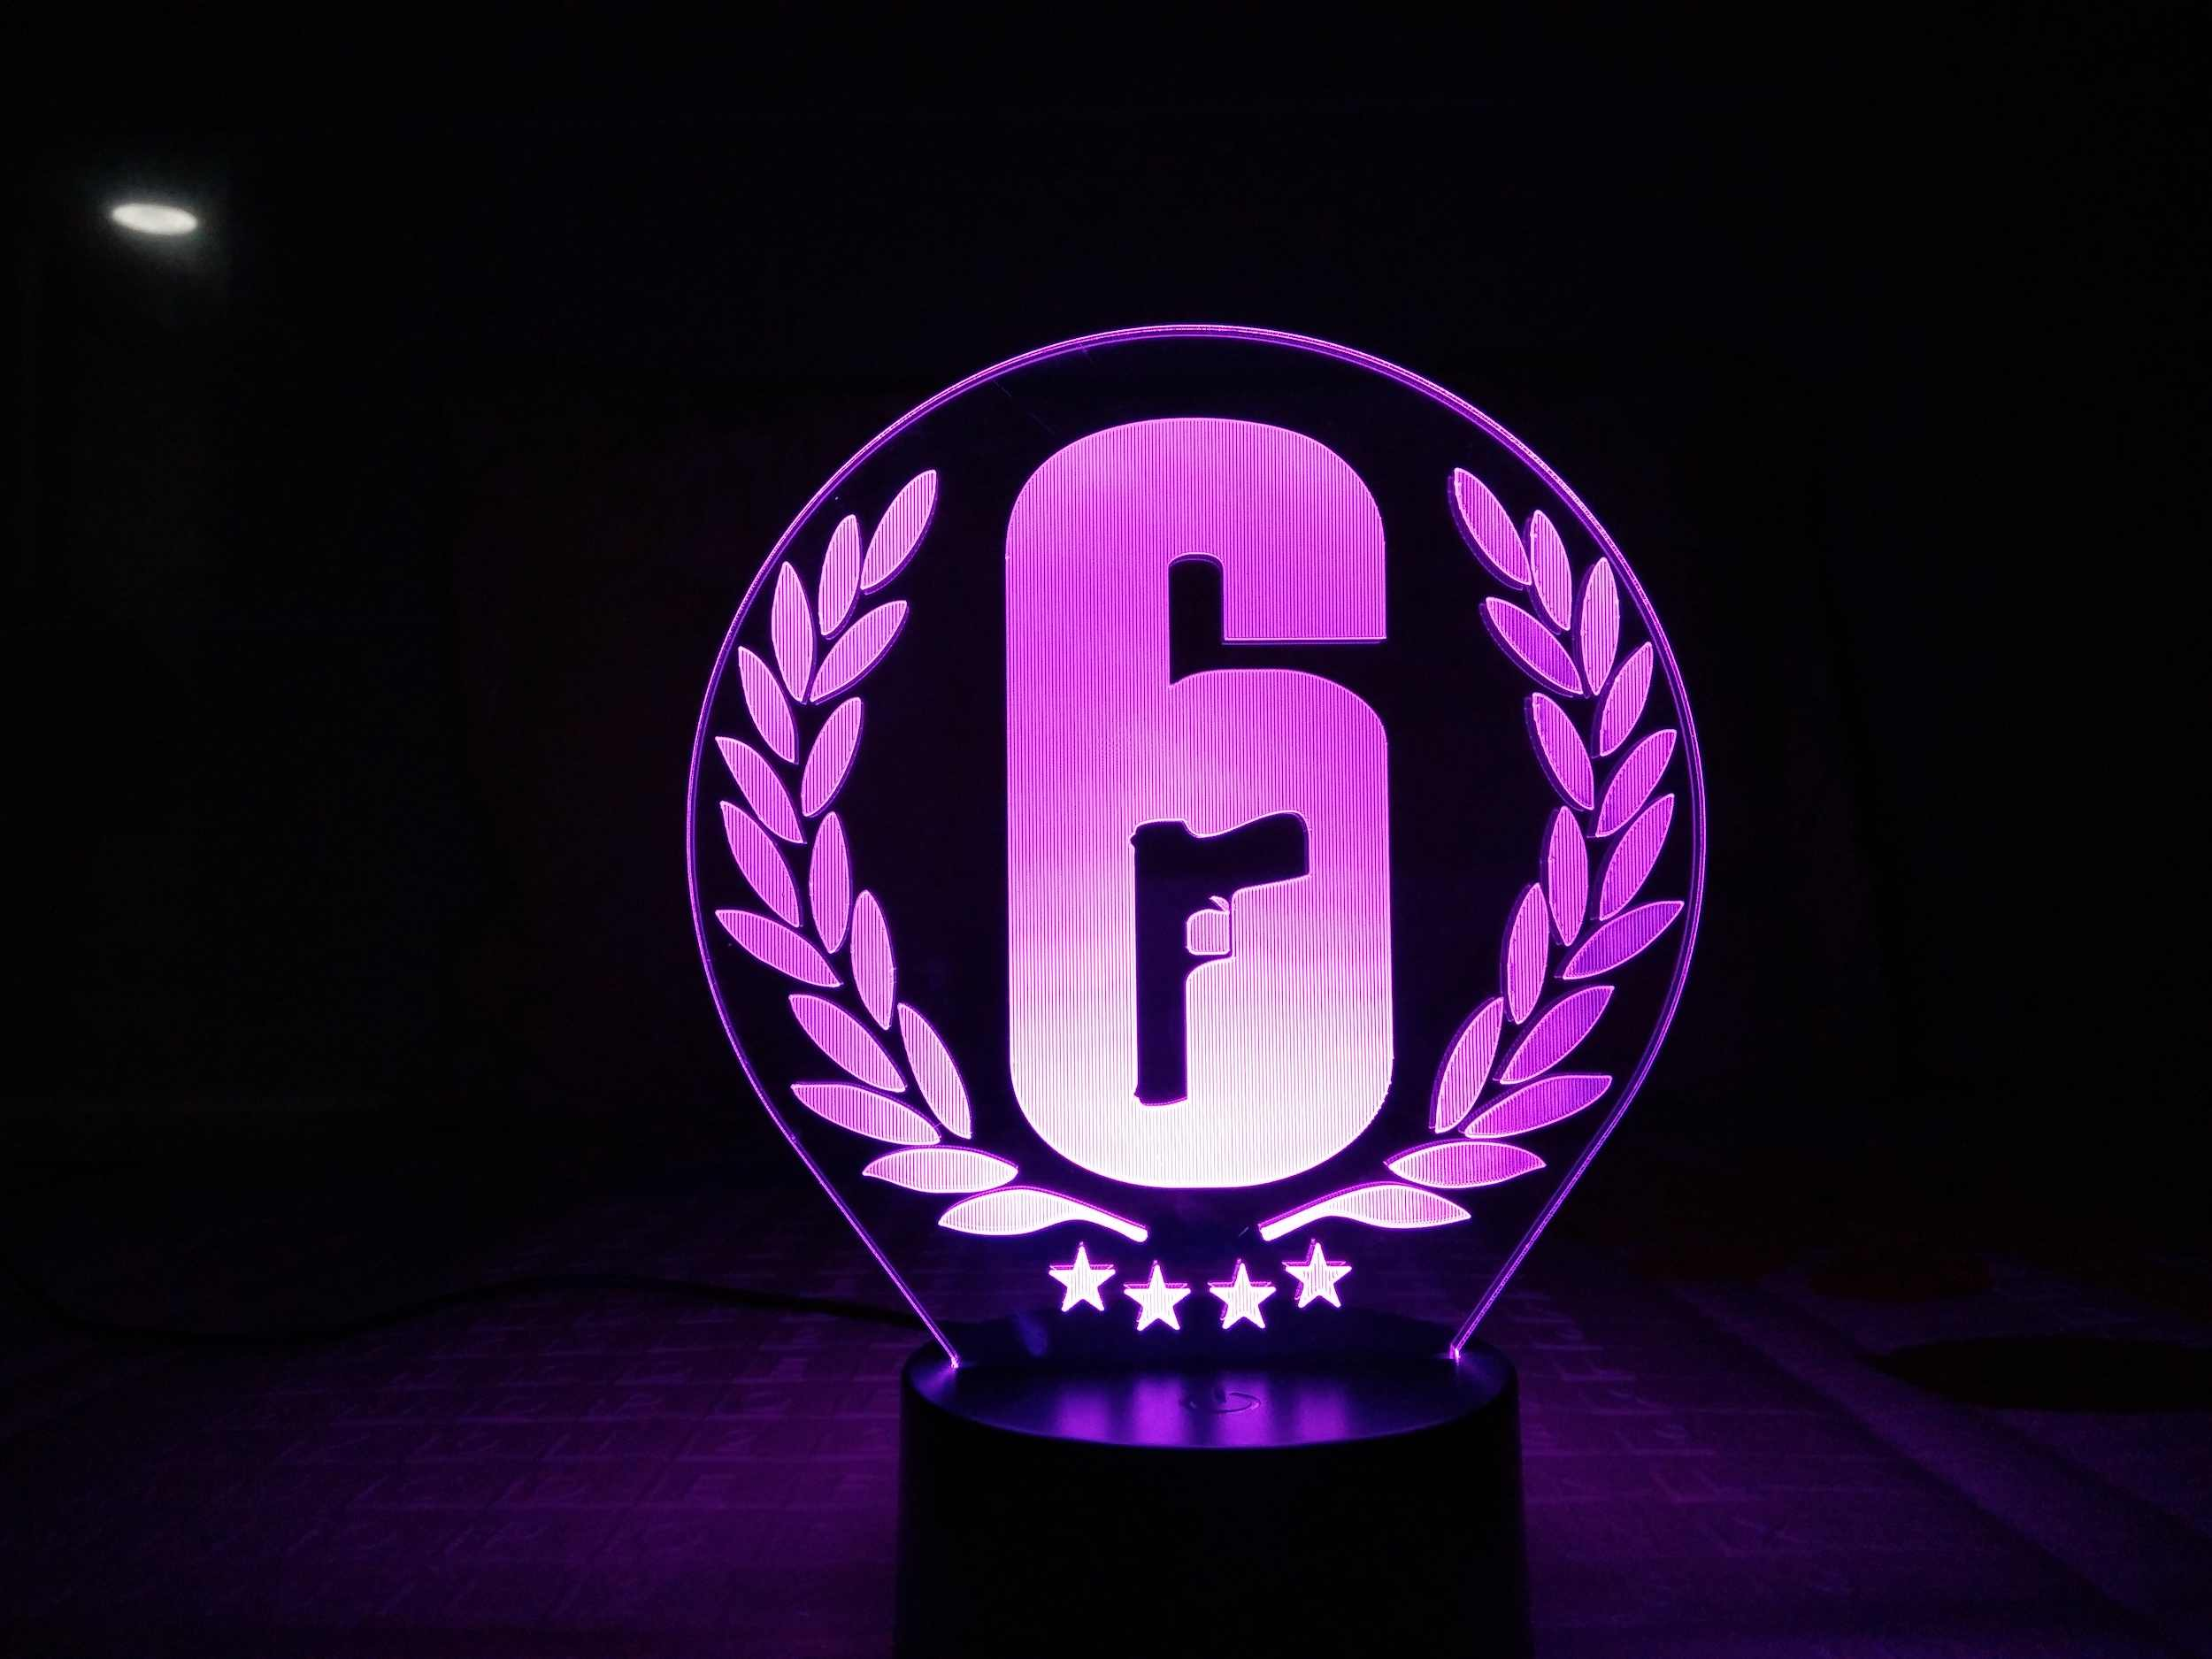 Rainbow Six Siege Night Light LED Touch Sensor 7 Color Changing Child Kids  Gift FPS Game Table Lamp Rainbow 6 Logo Bedroom Decor.